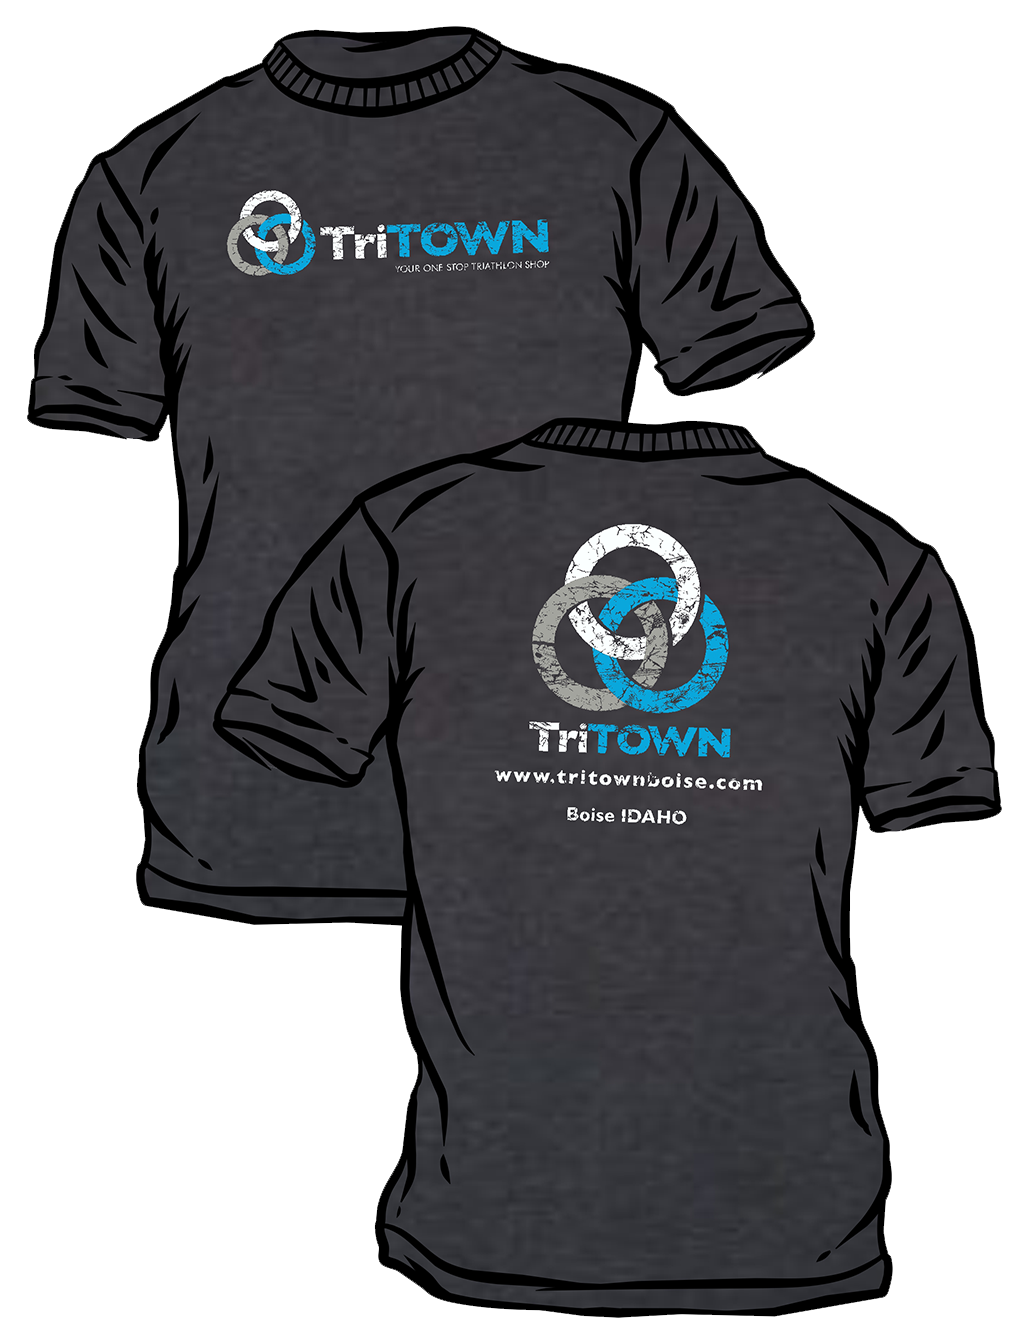 TriTown Women's Podium Shirt